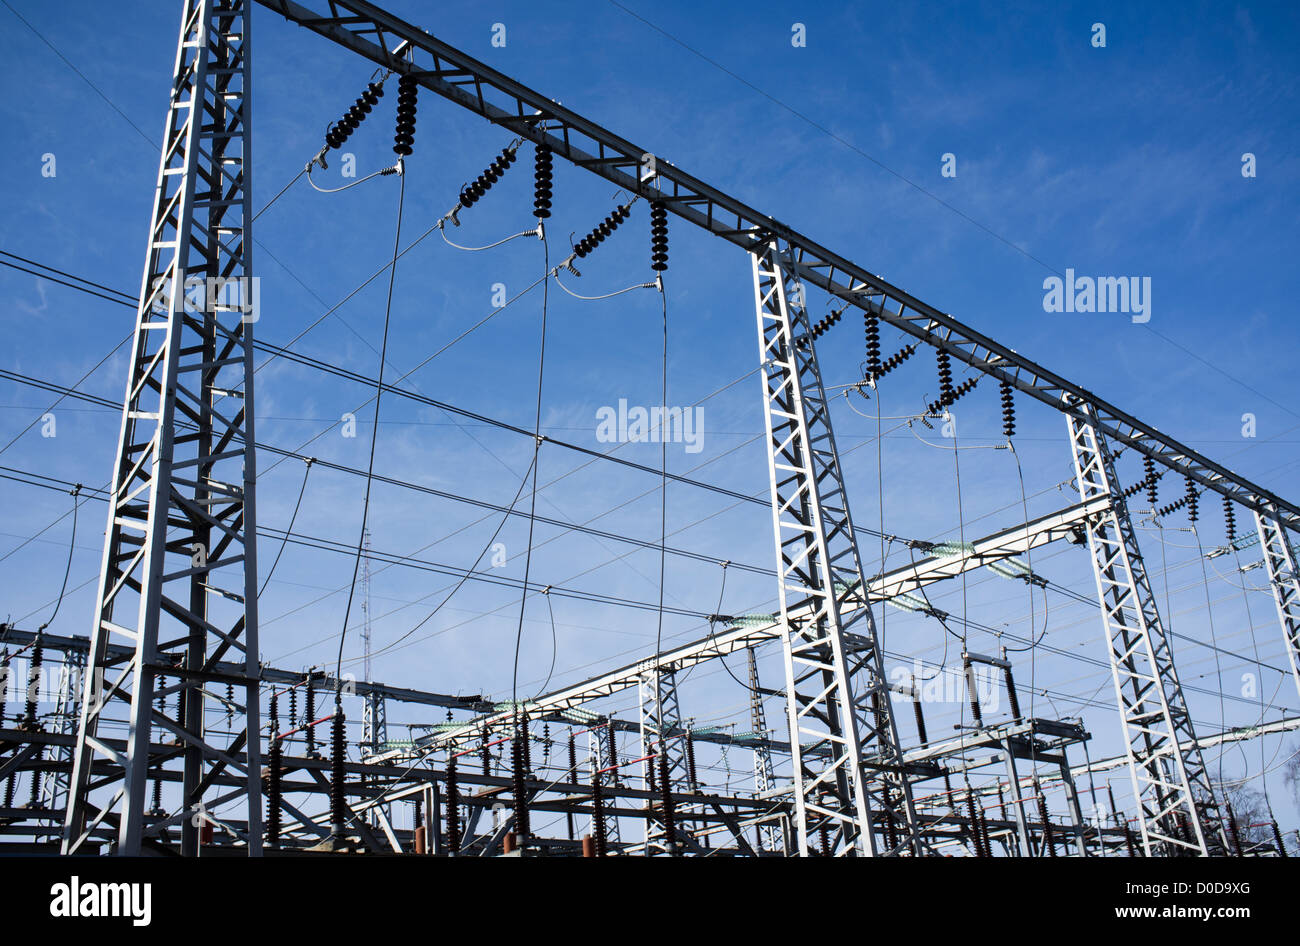 High-voltage overhead power transmission lines against blue sky - Stock Image